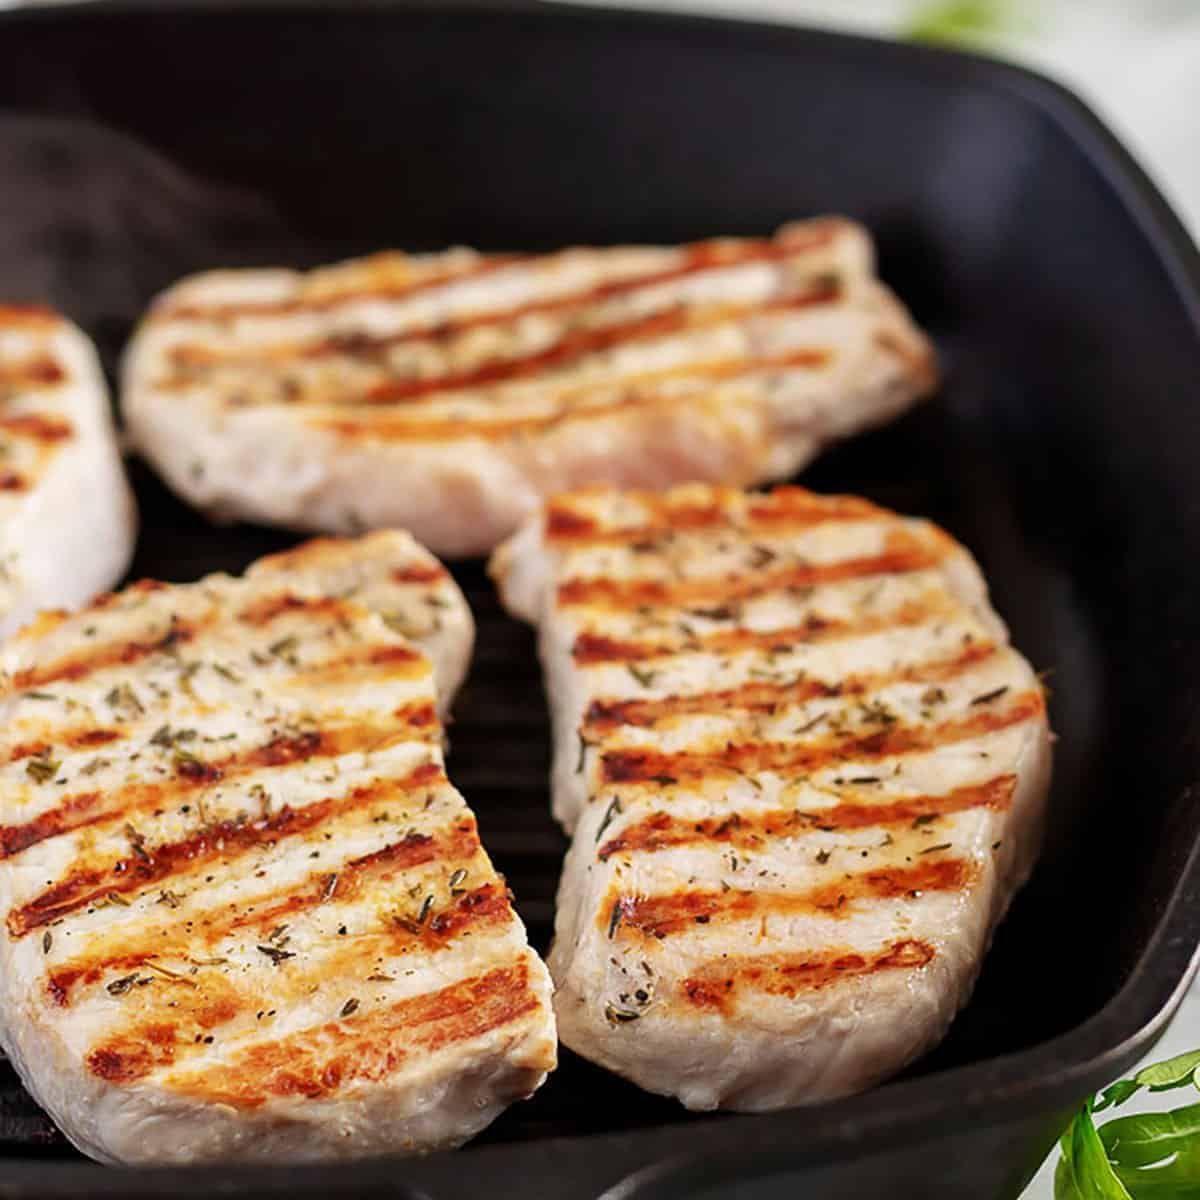 Grilled pork chops in a cast iron skillet.